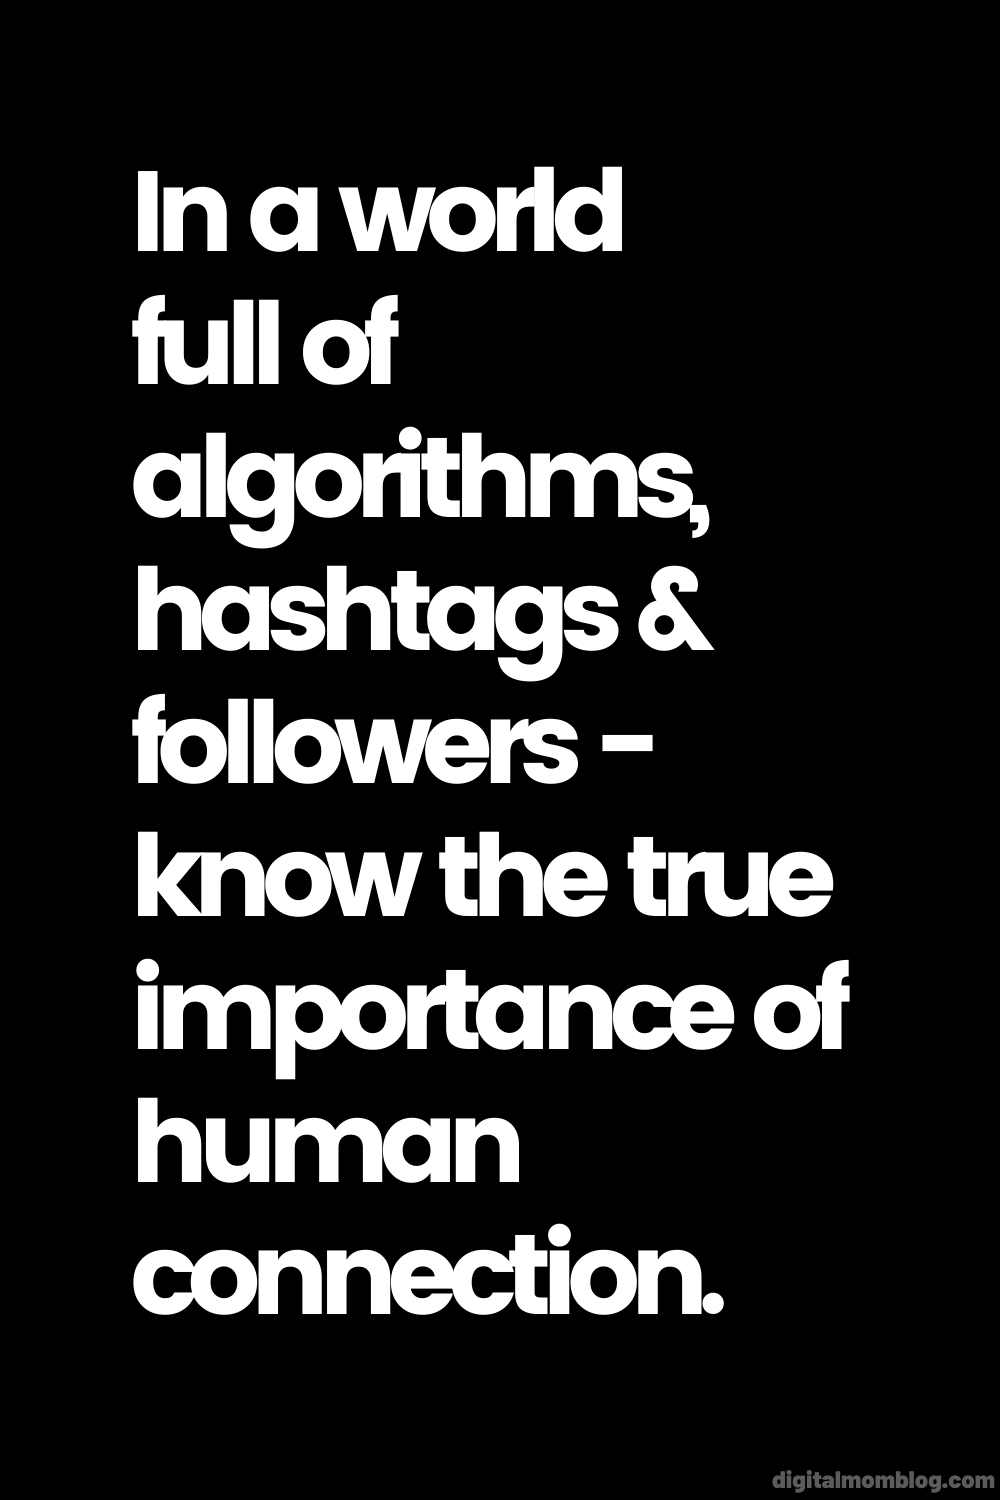 human connection quote - In a world  full of algorithms, hashtags & followers - know the true importance of human connection.